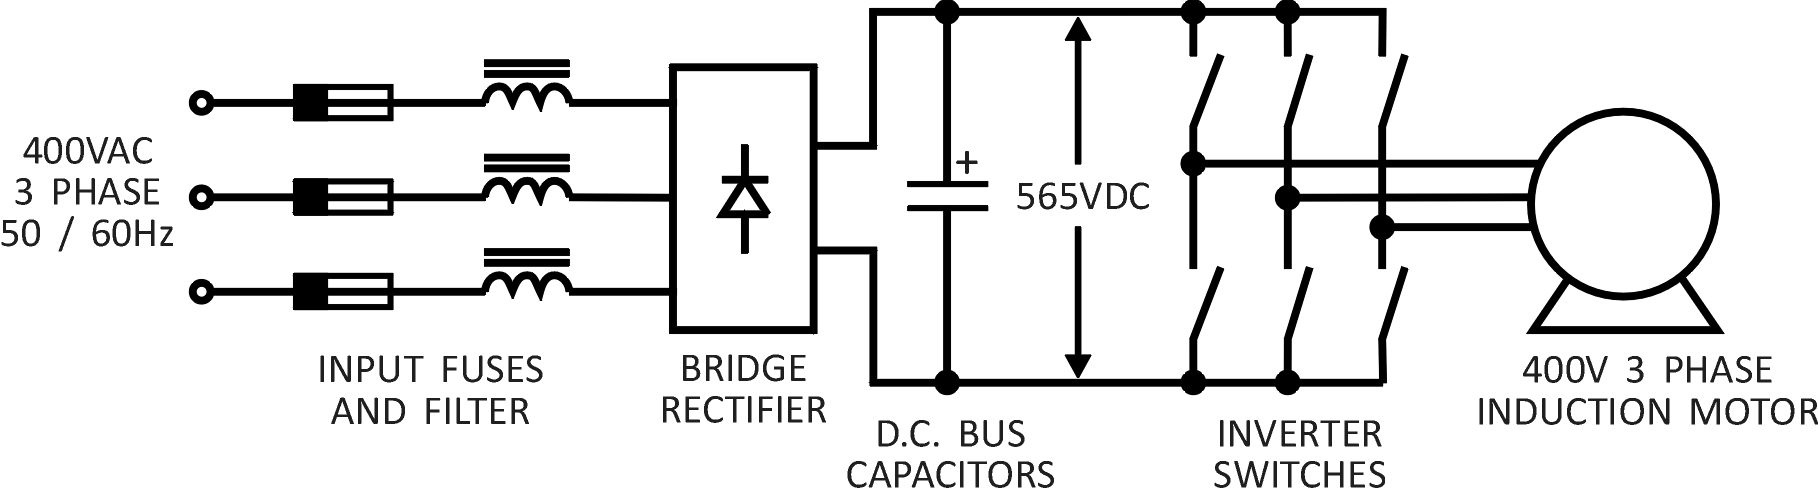 hight resolution of a block diagram is shown in figure 3 rectification is done with a 3 phase diode bridge rectifier and inversion uses 6 electronic switches usually igbts